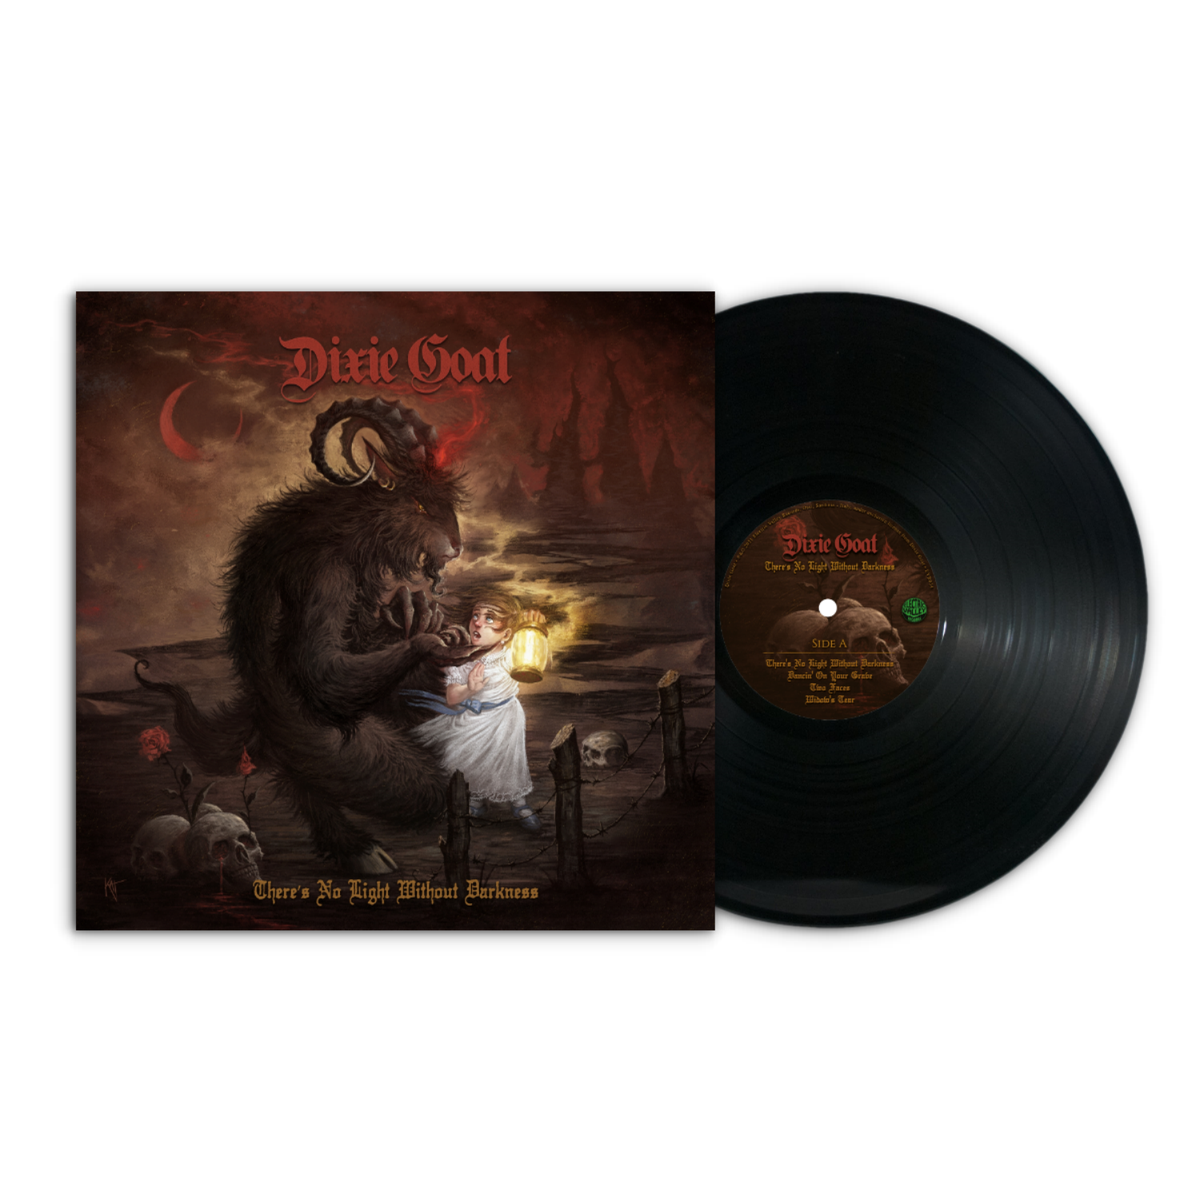 Image of Dixie Goat - There's No Light Without Darkness LTD Black Vinyl